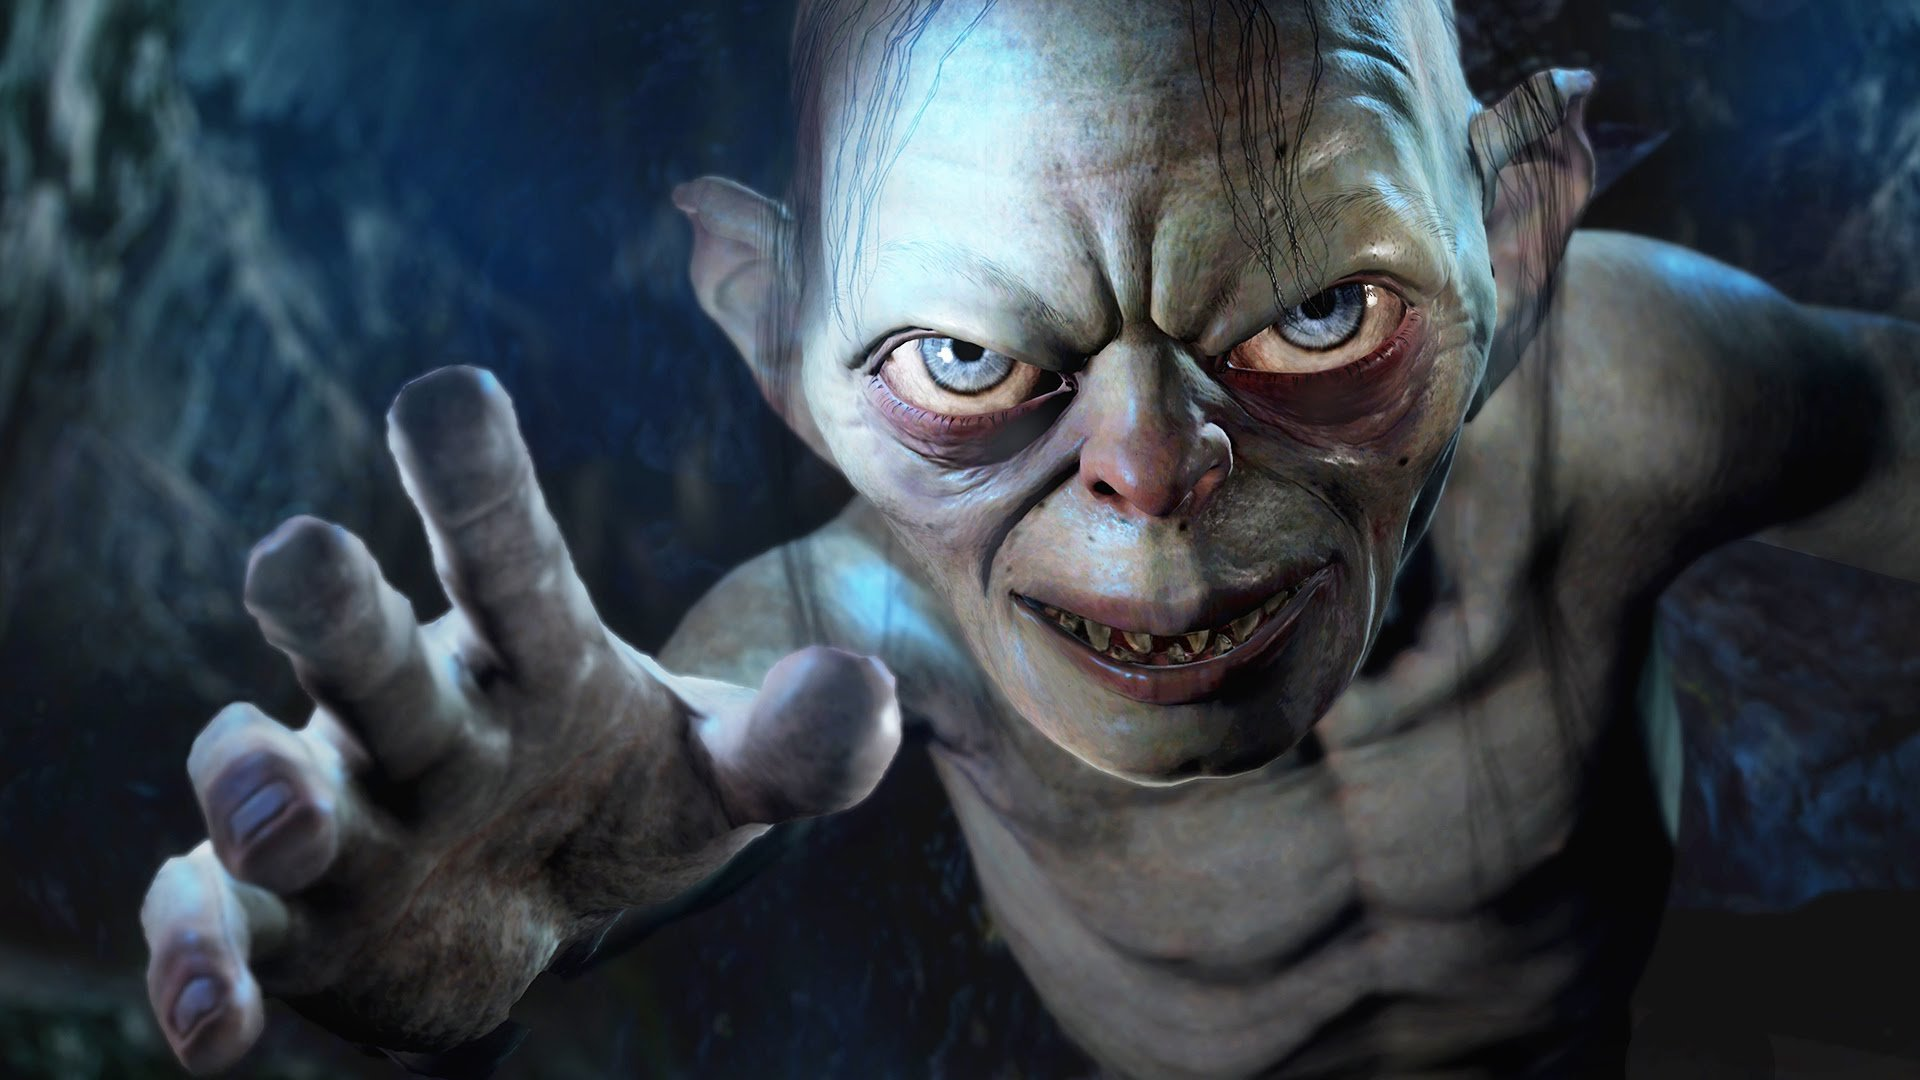 There's A New Lord Of The Rings Game About Gollum